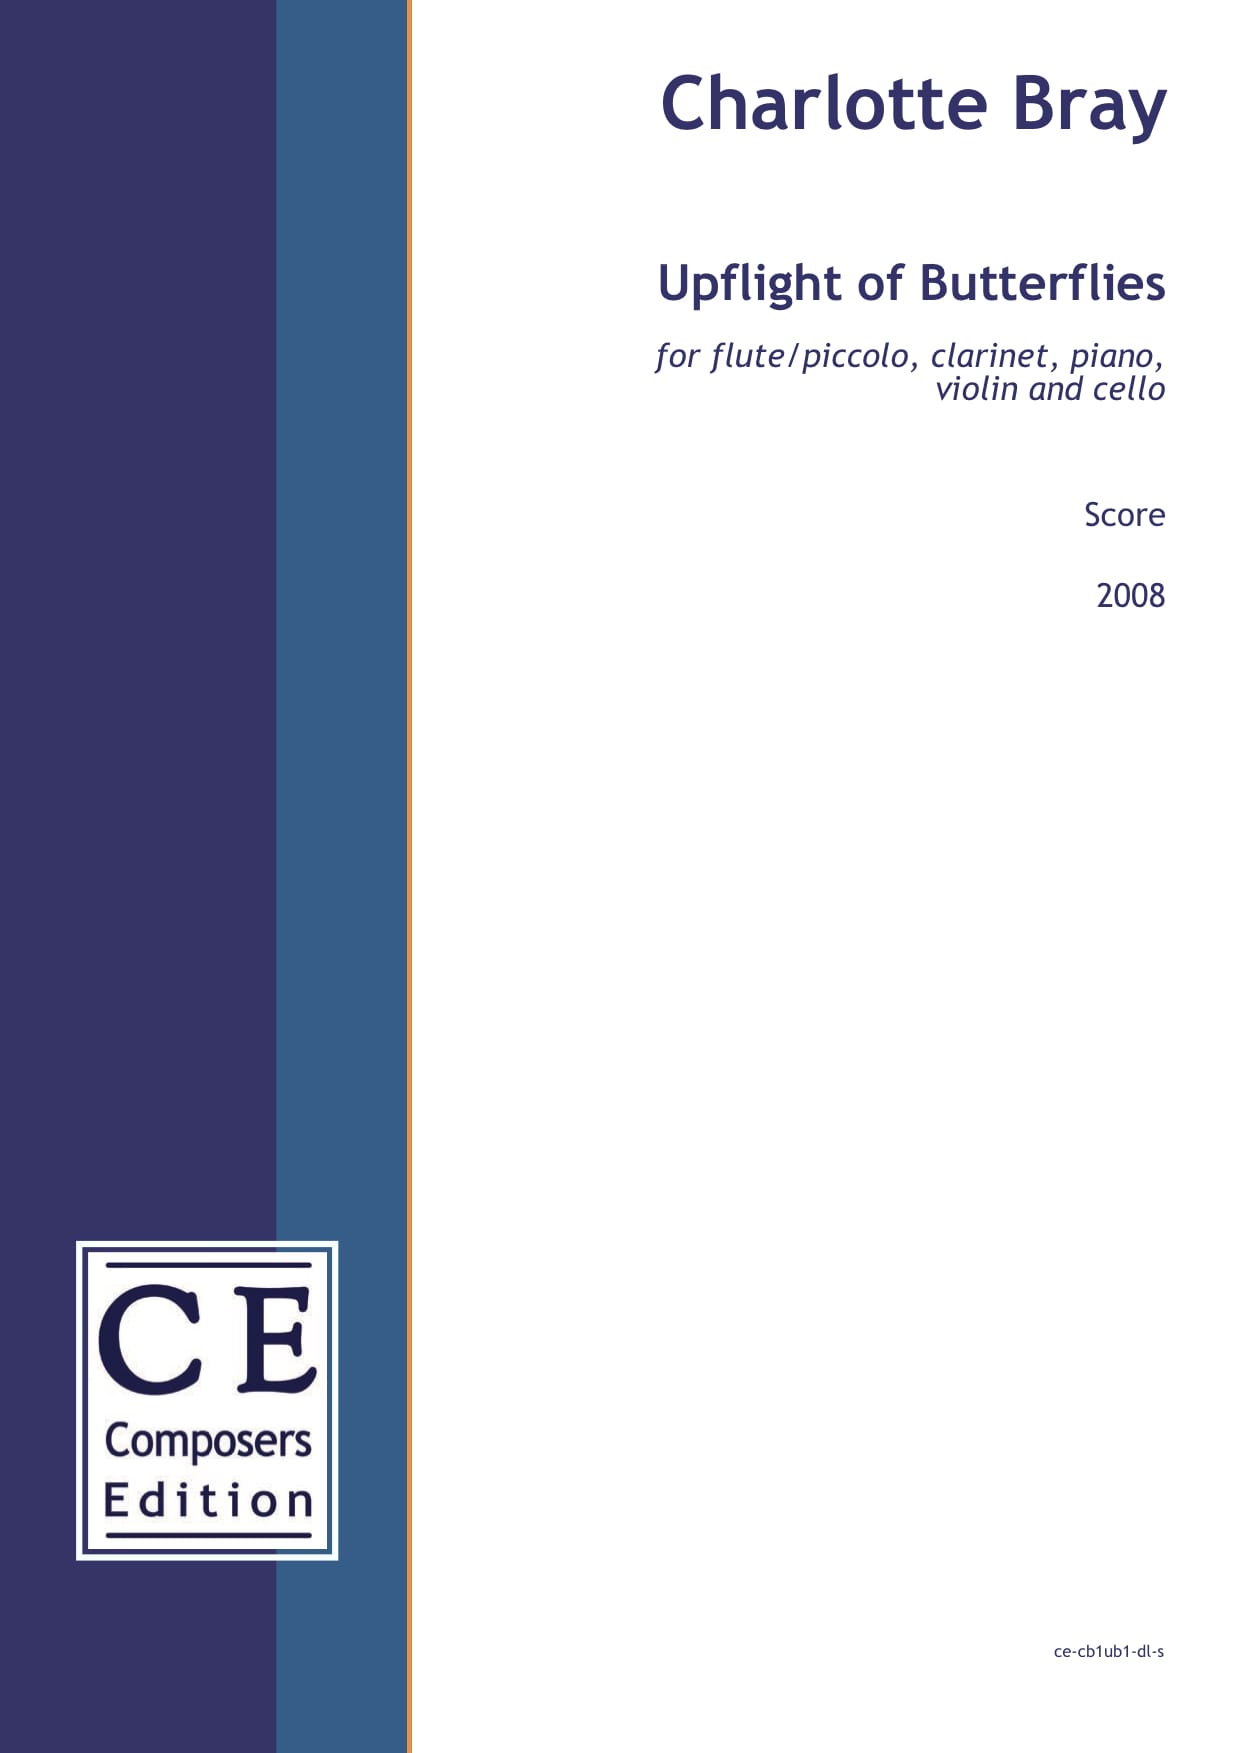 Charlotte Bray: Upflight of Butterflies for flute/piccolo, clarinet, piano, violin and cello